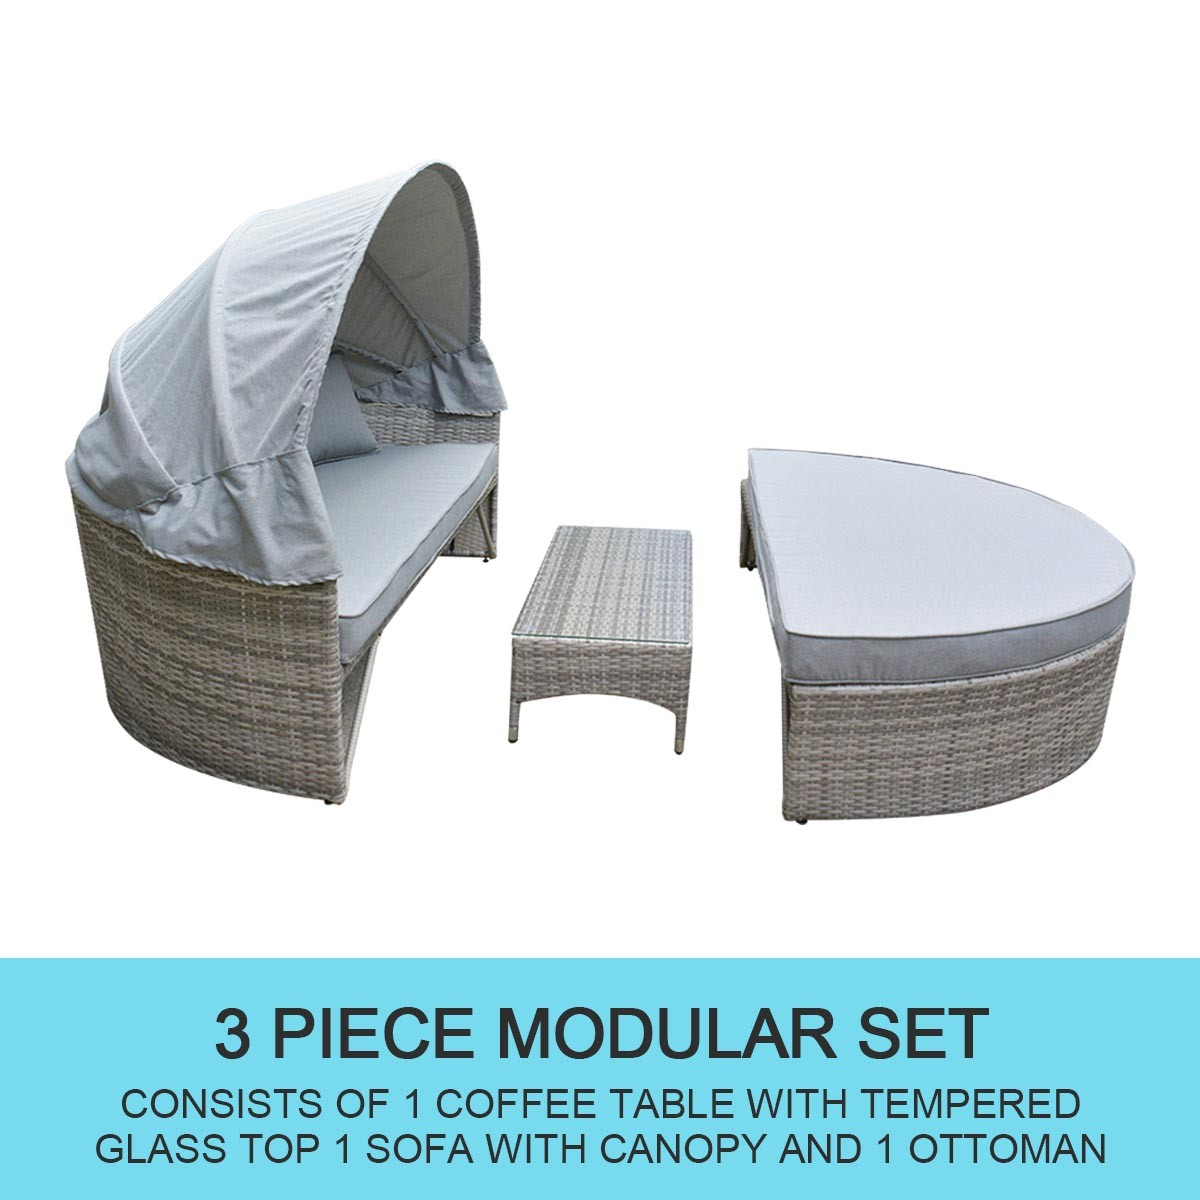 canopy daybed outdoor wicker sun sofa lounge best deals cebu pe round day bed lounger rattan furniture set colours may differ on viewing device all rights reserved